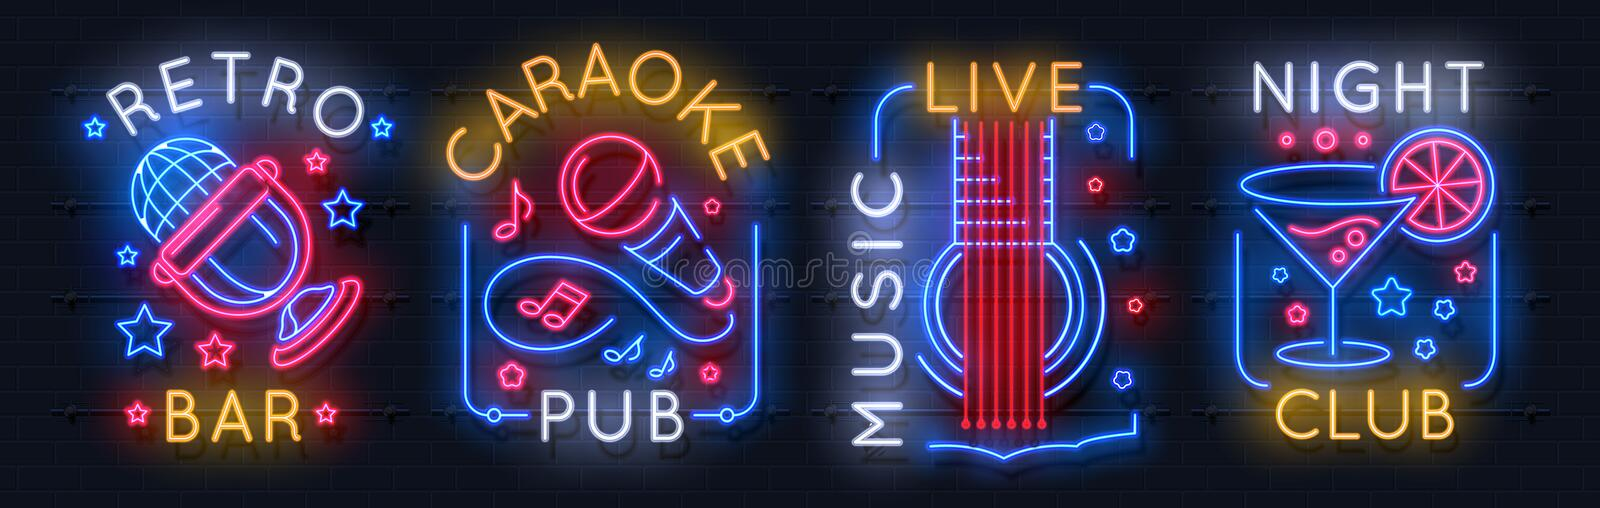 Neon music sign. Karaoke light logo, sound studio light emblem, night club graphic poster. Vector music bar neon label. Acoustic concert radio rock show royalty free illustration